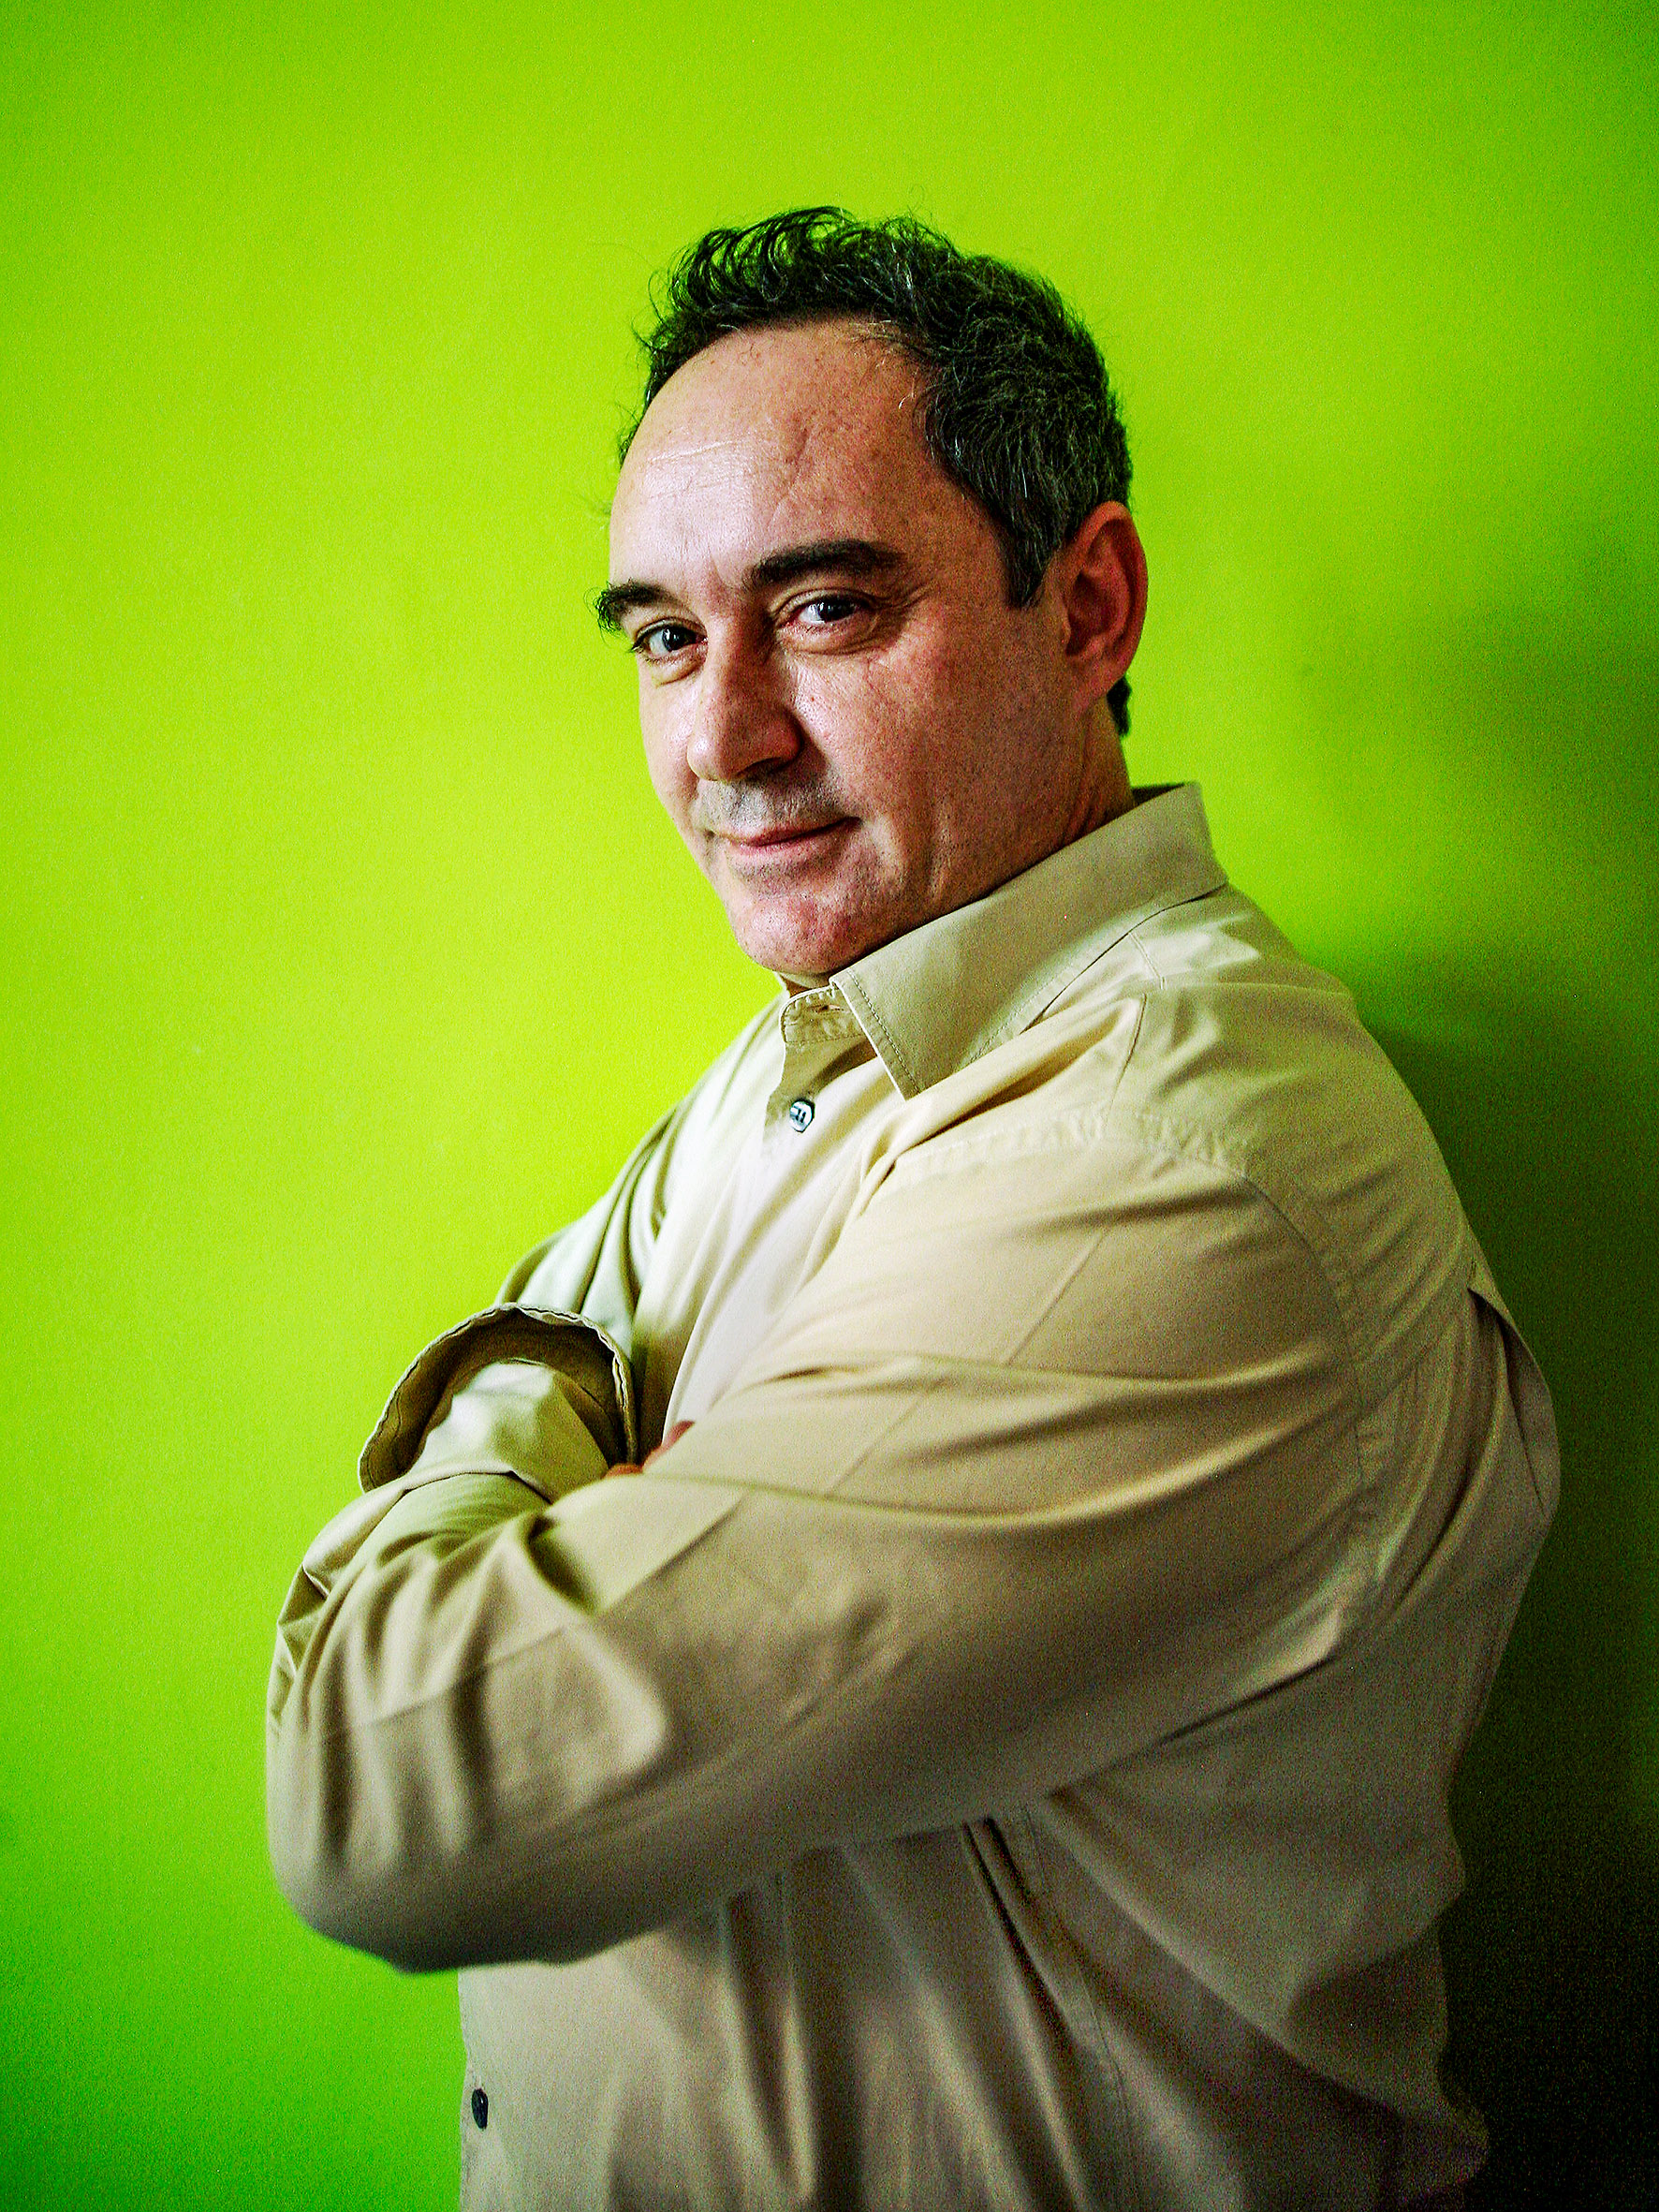 Chef Portraits | Ferran Adria, the head chef of the legendary Catalan restaurant ElBulli | Barcelona, Spain 2006